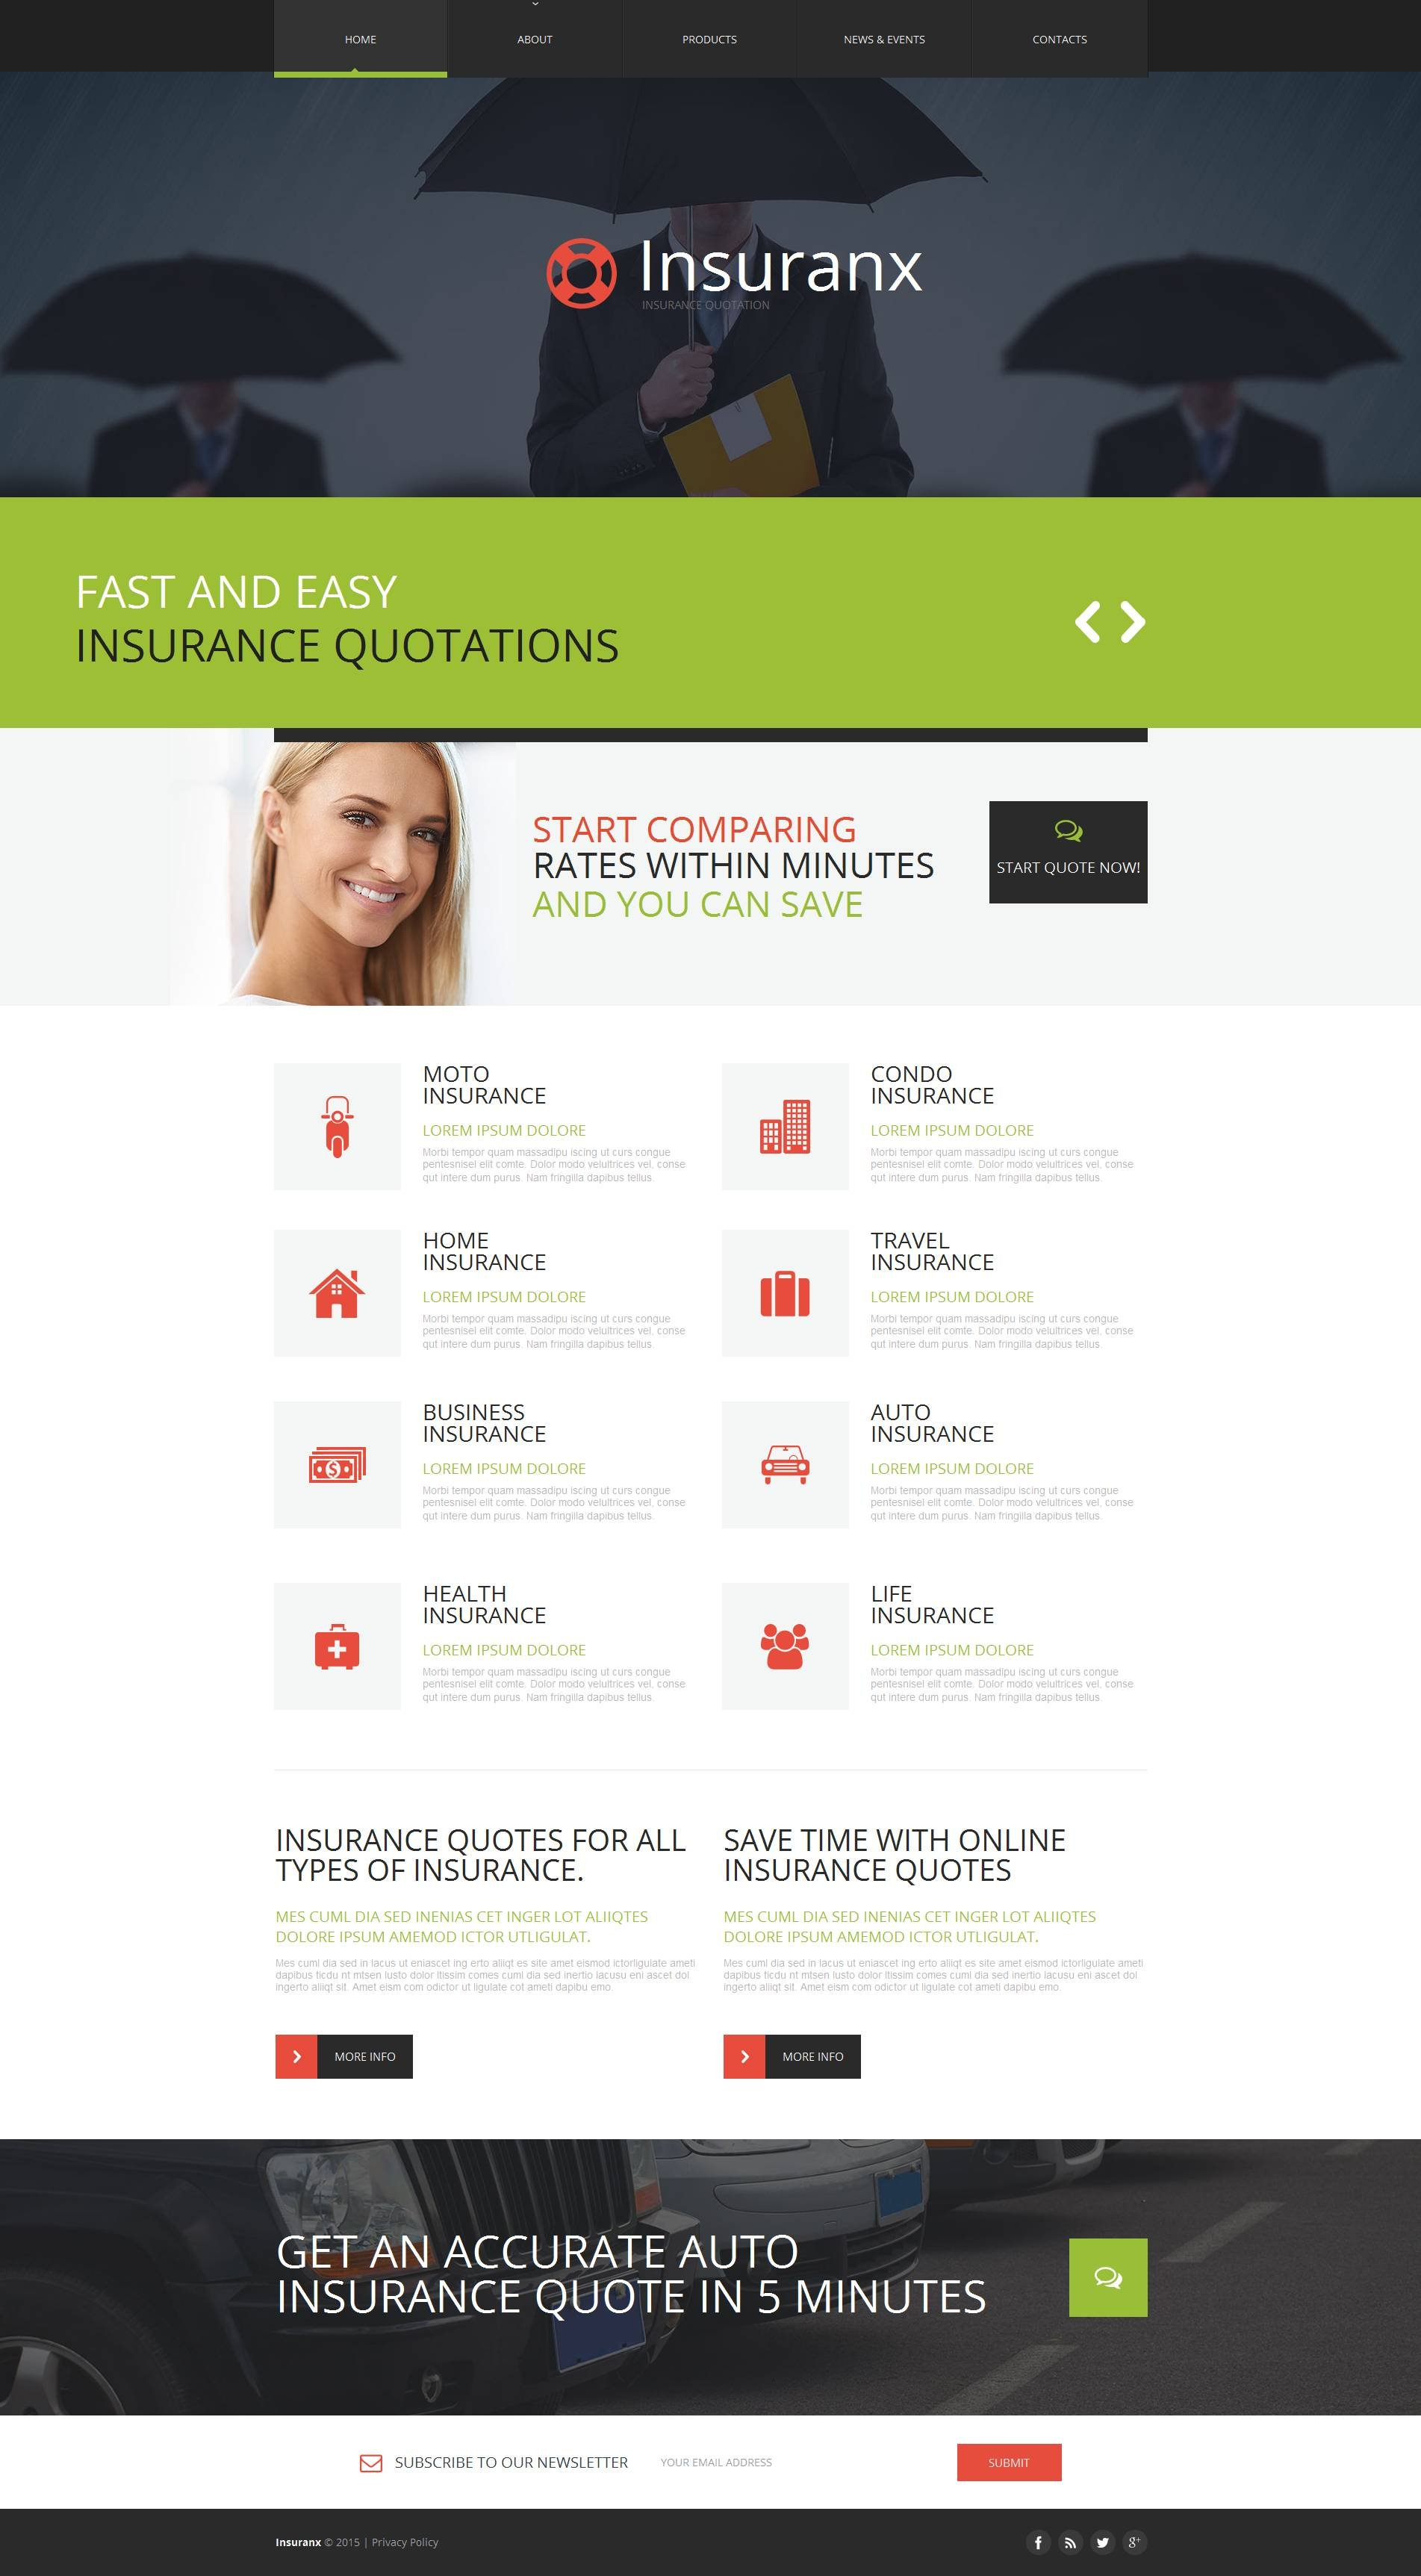 The Insuranx Insurance Moto CMS HTML Design 53609, one of the best Moto CMS HTML templates of its kind (business, most popular), also known as insuranx insurance Moto CMS HTML template, business Moto CMS HTML template, success company Moto CMS HTML template, enterprise solution Moto CMS HTML template, business Moto CMS HTML template, industry Moto CMS HTML template, technical Moto CMS HTML template, clients Moto CMS HTML template, customer support Moto CMS HTML template, automate Moto CMS HTML template, flow Moto CMS HTML template, services Moto CMS HTML template, plug-in Moto CMS HTML template, flex Moto CMS HTML template, profile Moto CMS HTML template, principles Moto CMS HTML template, web products Moto CMS HTML template, technology system and related with insuranx insurance, business, success company, enterprise solution, business, industry, technical, clients, customer support, automate, flow, services, plug-in, flex, profile, principles, web products, technology system, etc.